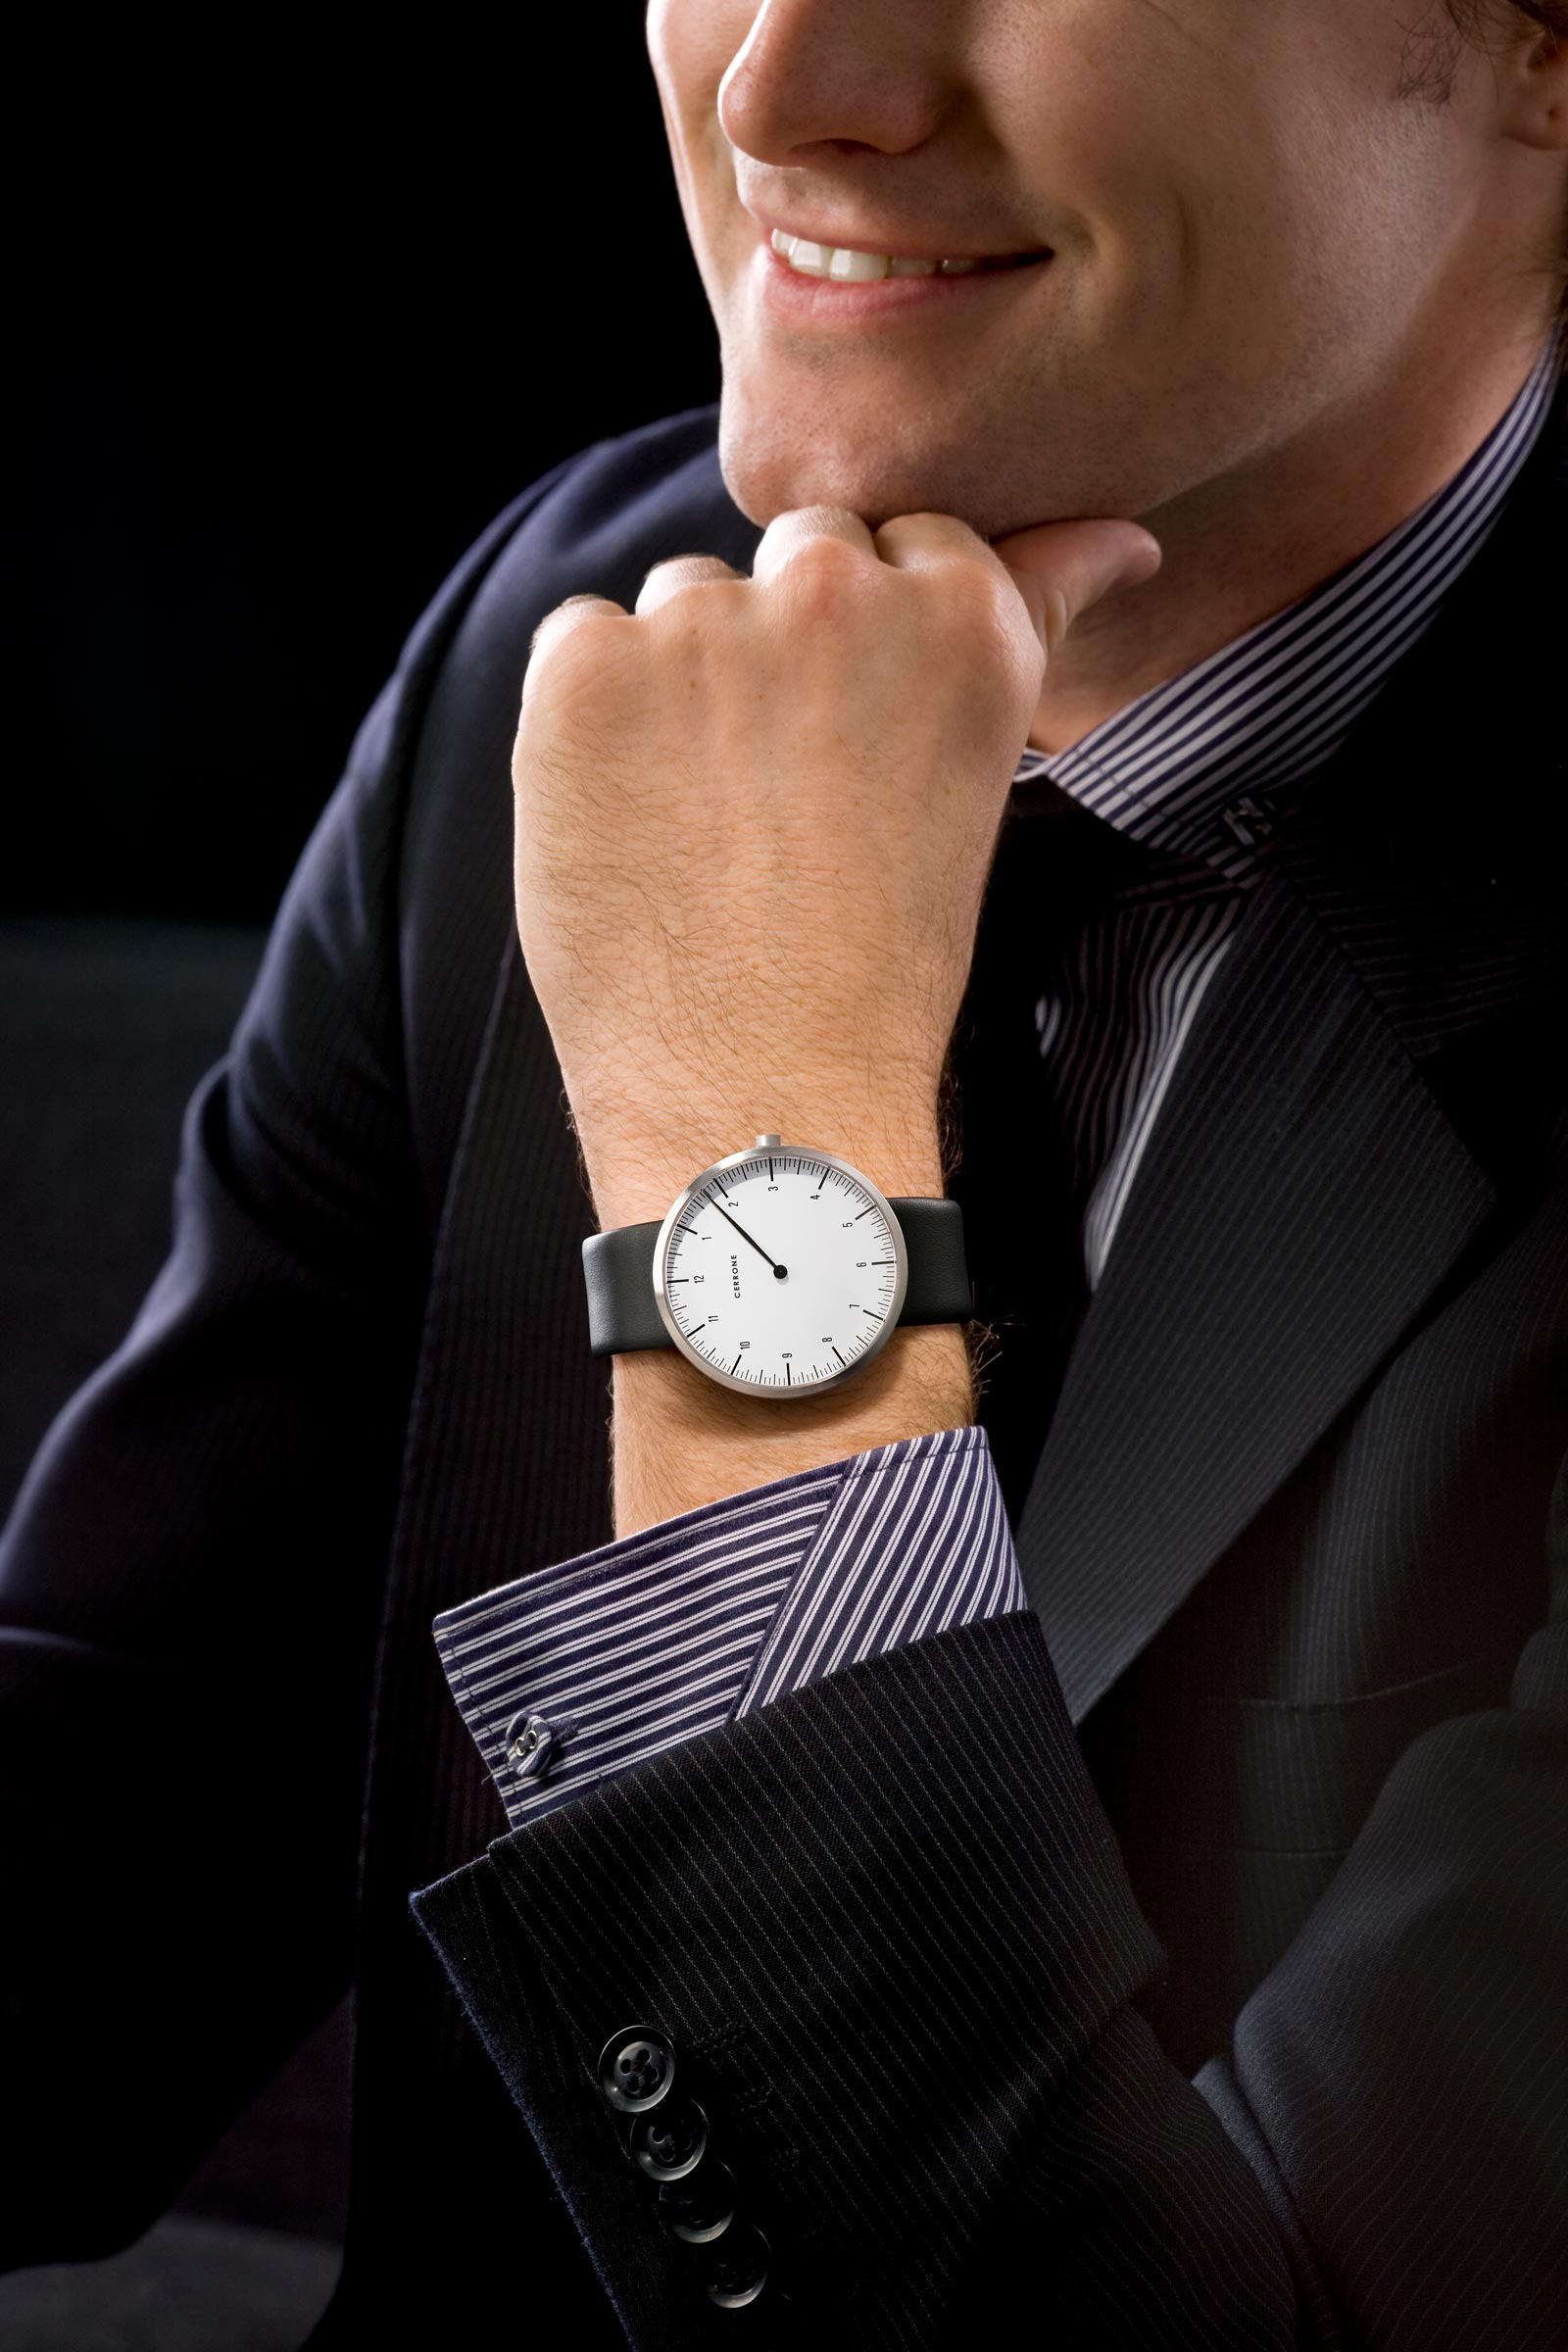 close up of corporate male wearing watch